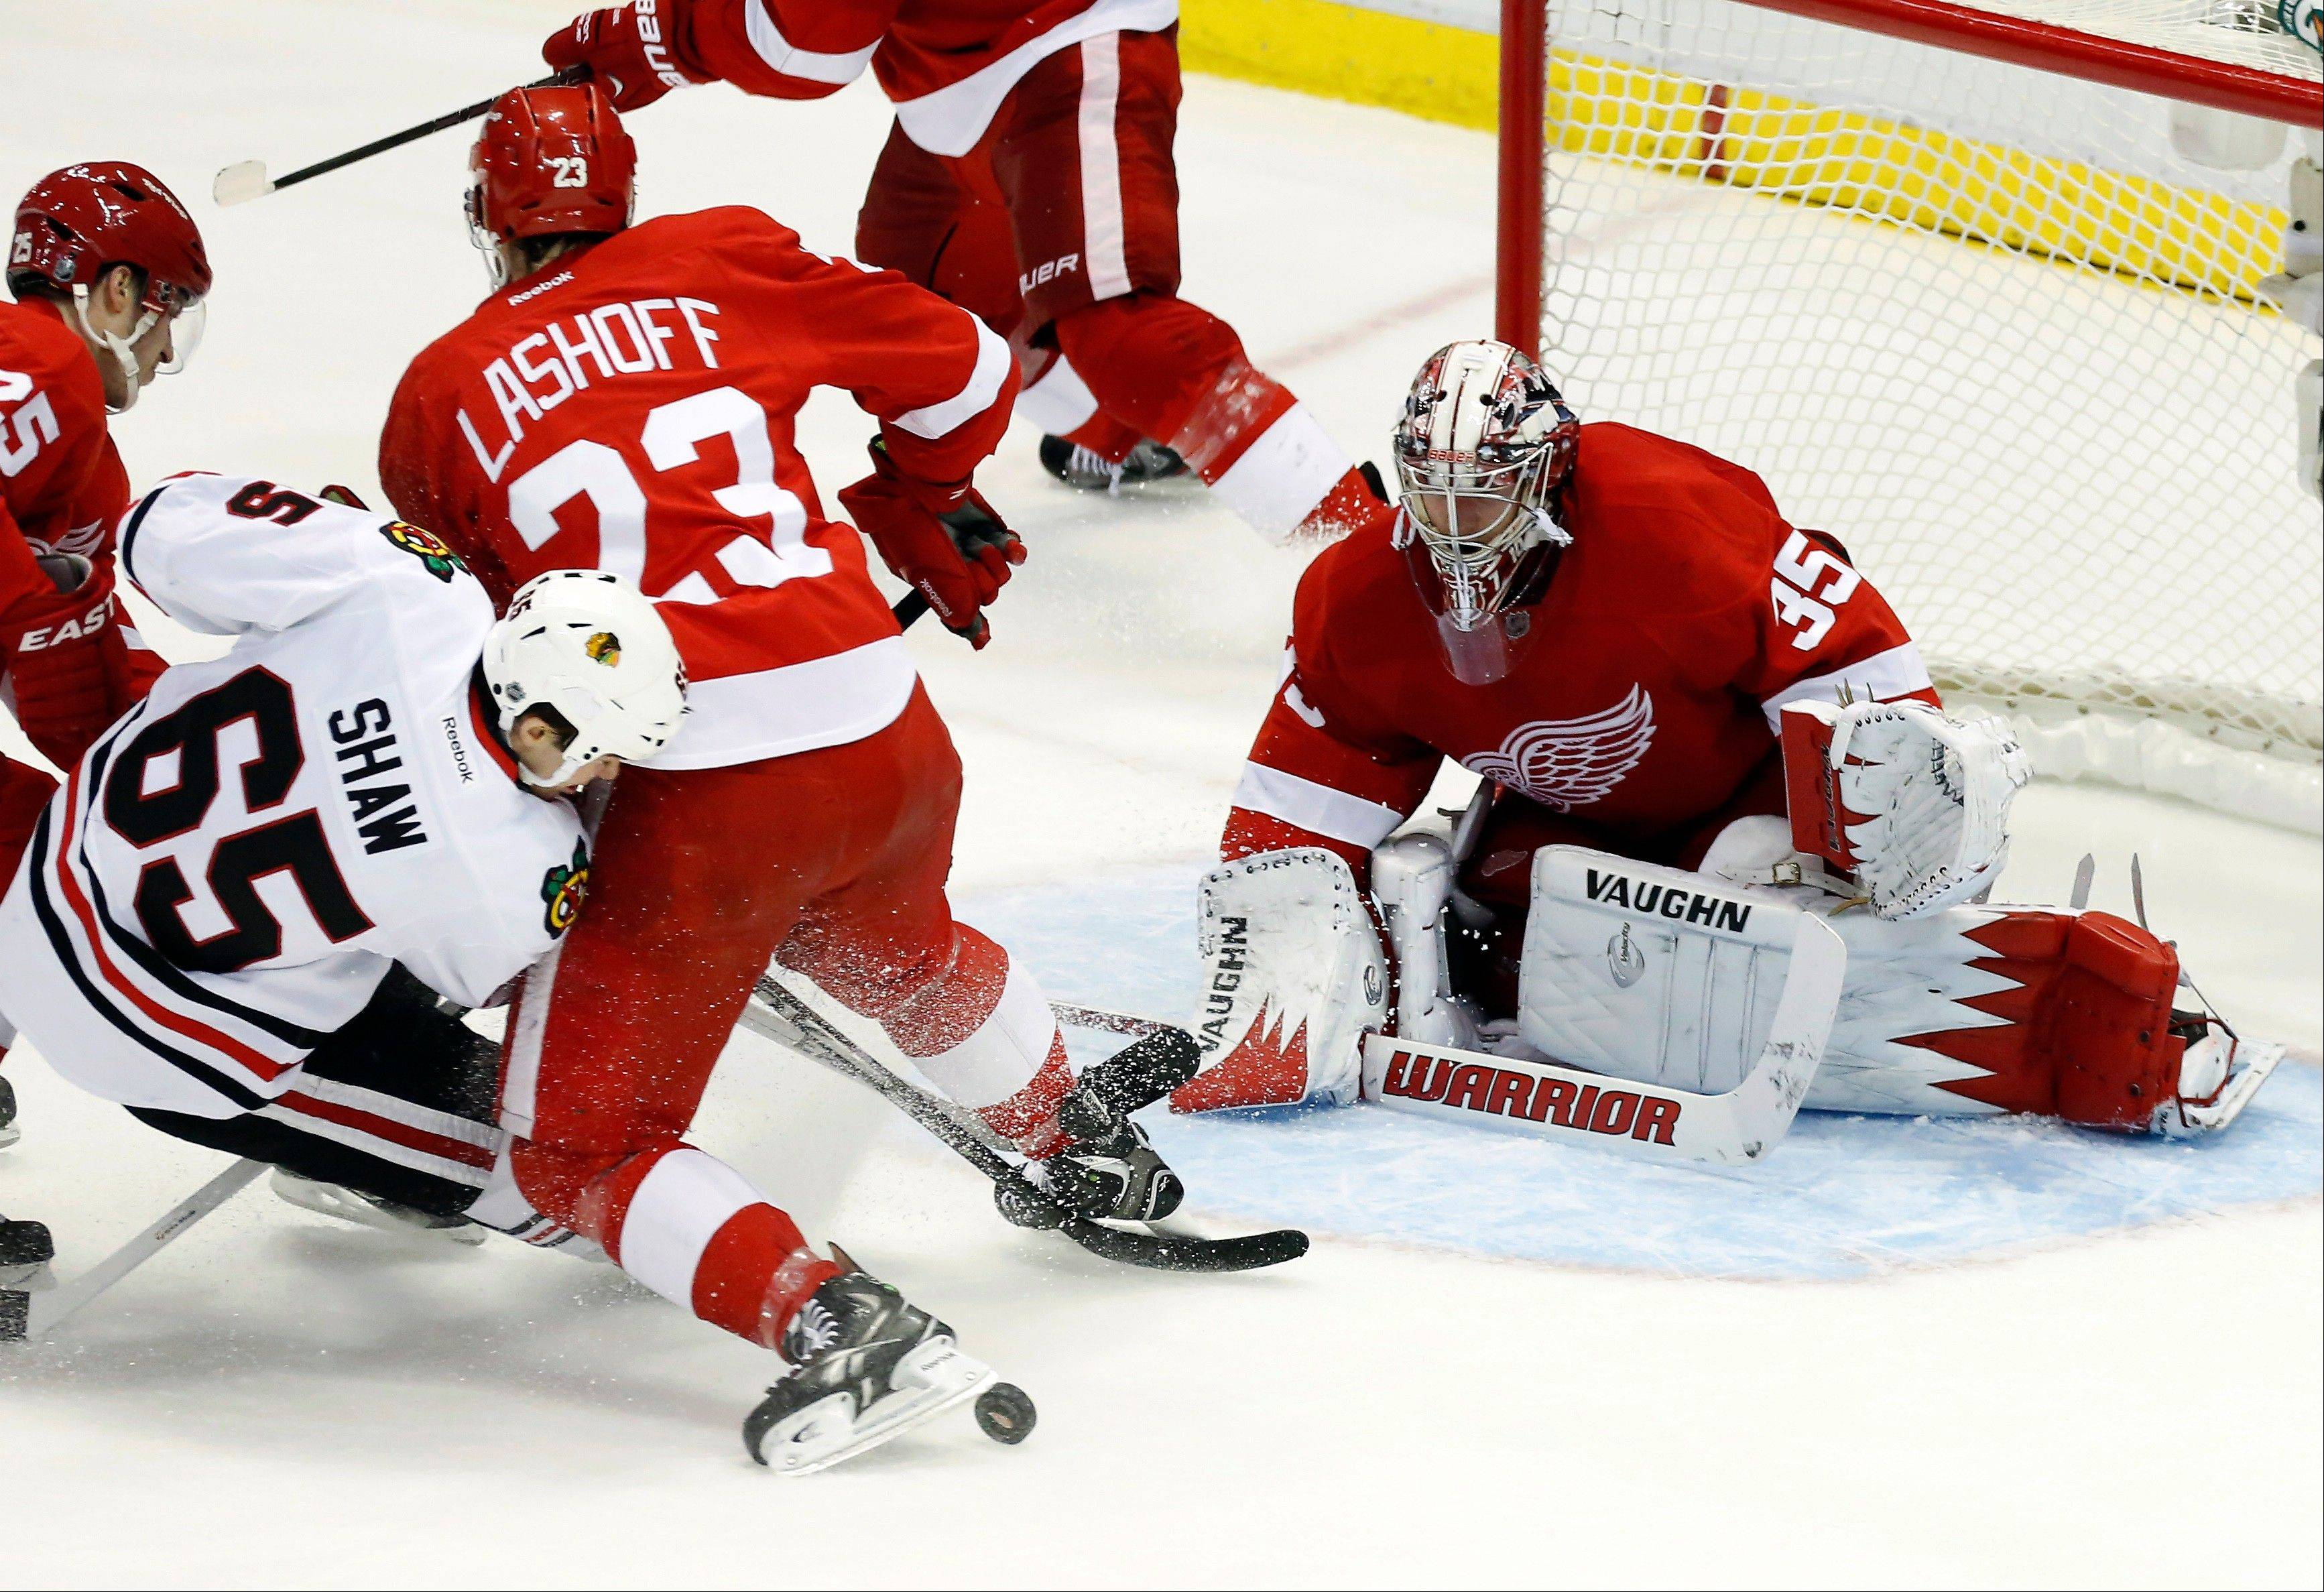 Detroit Red Wings defenseman Brian Lashoff (23) blocks a shot attempt by Blackhawks right wing Andrew Shaw (65) in front of Red Wings goalie Jimmy Howard (35) in the third period Sunday in Detroit. If realignment takes place the way it's being outlined, the Hawks and Red Wings will meet just twice per season.